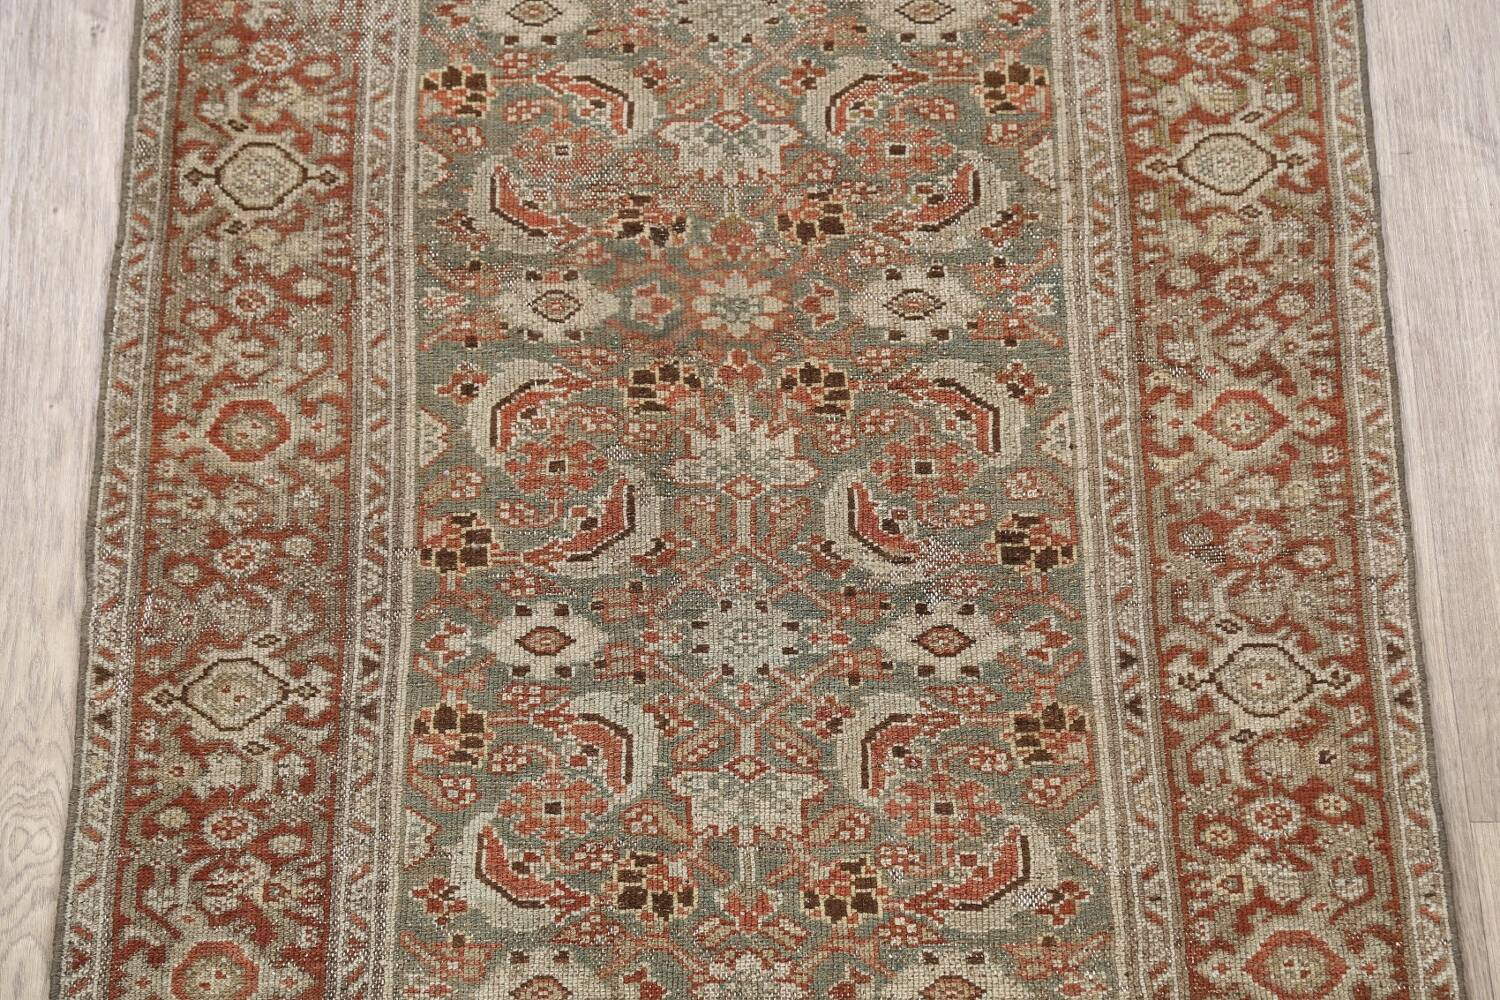 Pre-1900 Antique Malayer Persian Runner Rug 2x16 image 4